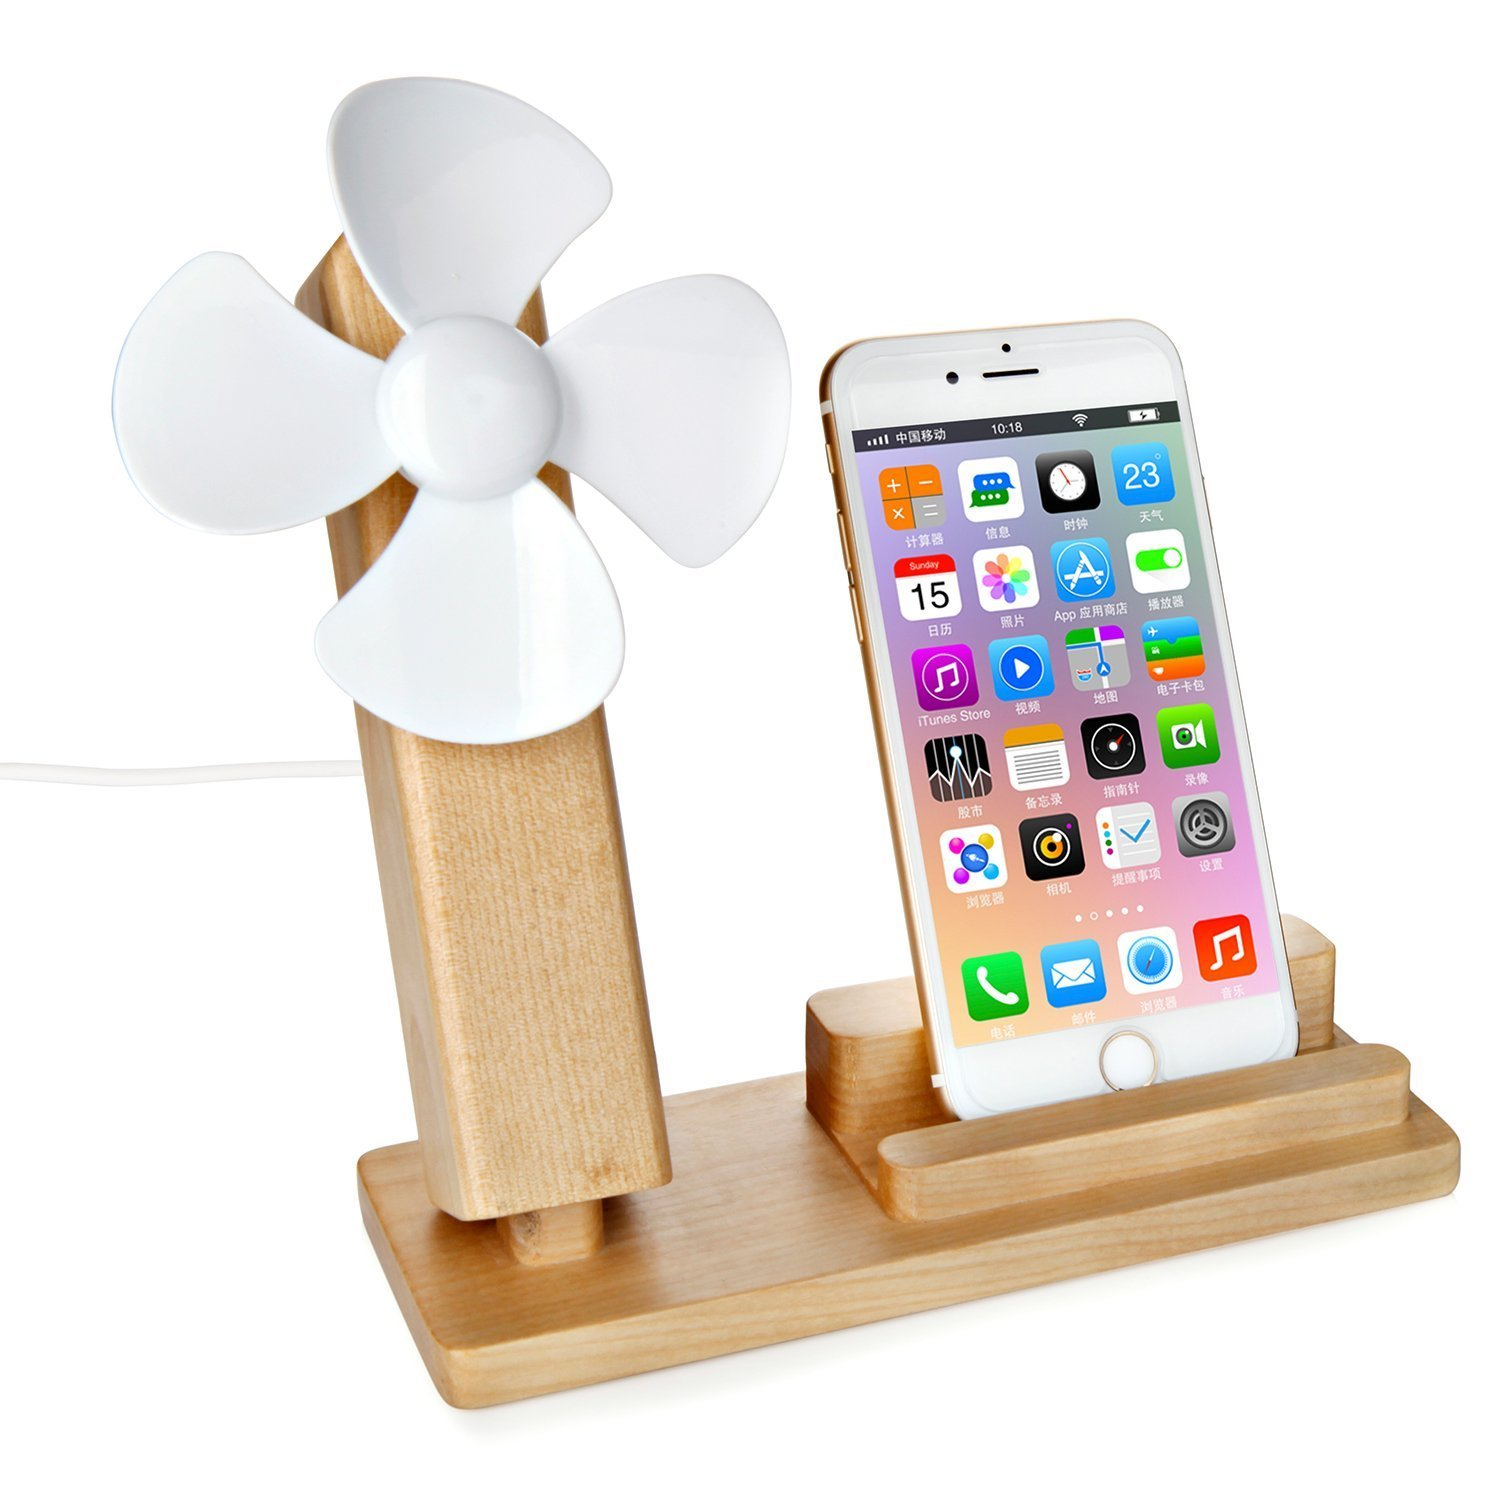 VIMVIP Wooden Cell Phone Stand,Natural Wood Smartphone Holder with USB Fan for iPhone 7 / 7 Plus / 6s / 6s Plus, Samsung Galaxy S7 / S7 Edge / Note 5, Google Nexus 6 / 5 and More (White)